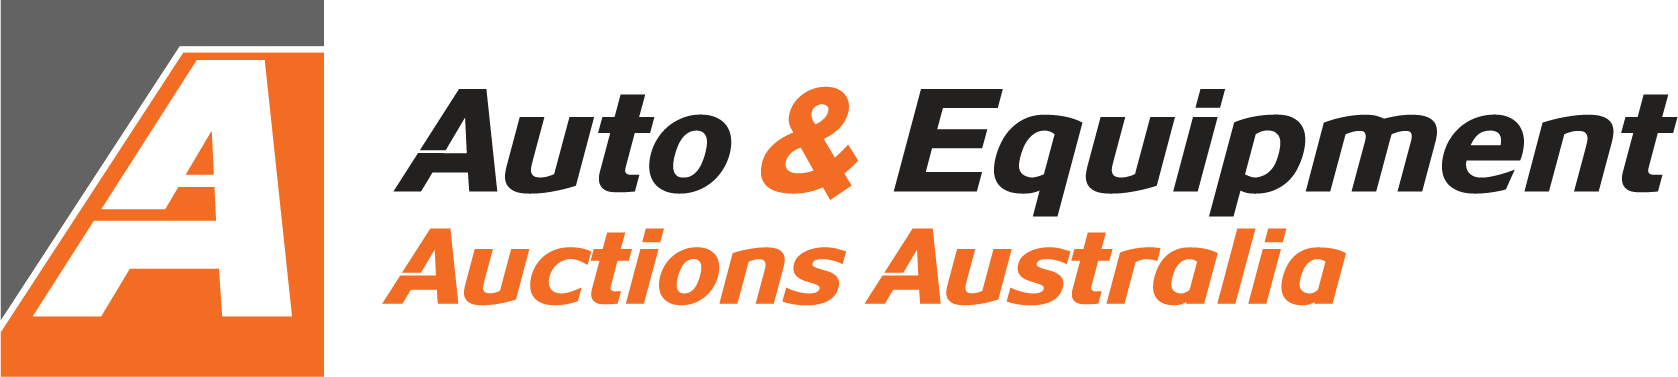 Auto & Equipment Auctions Australia